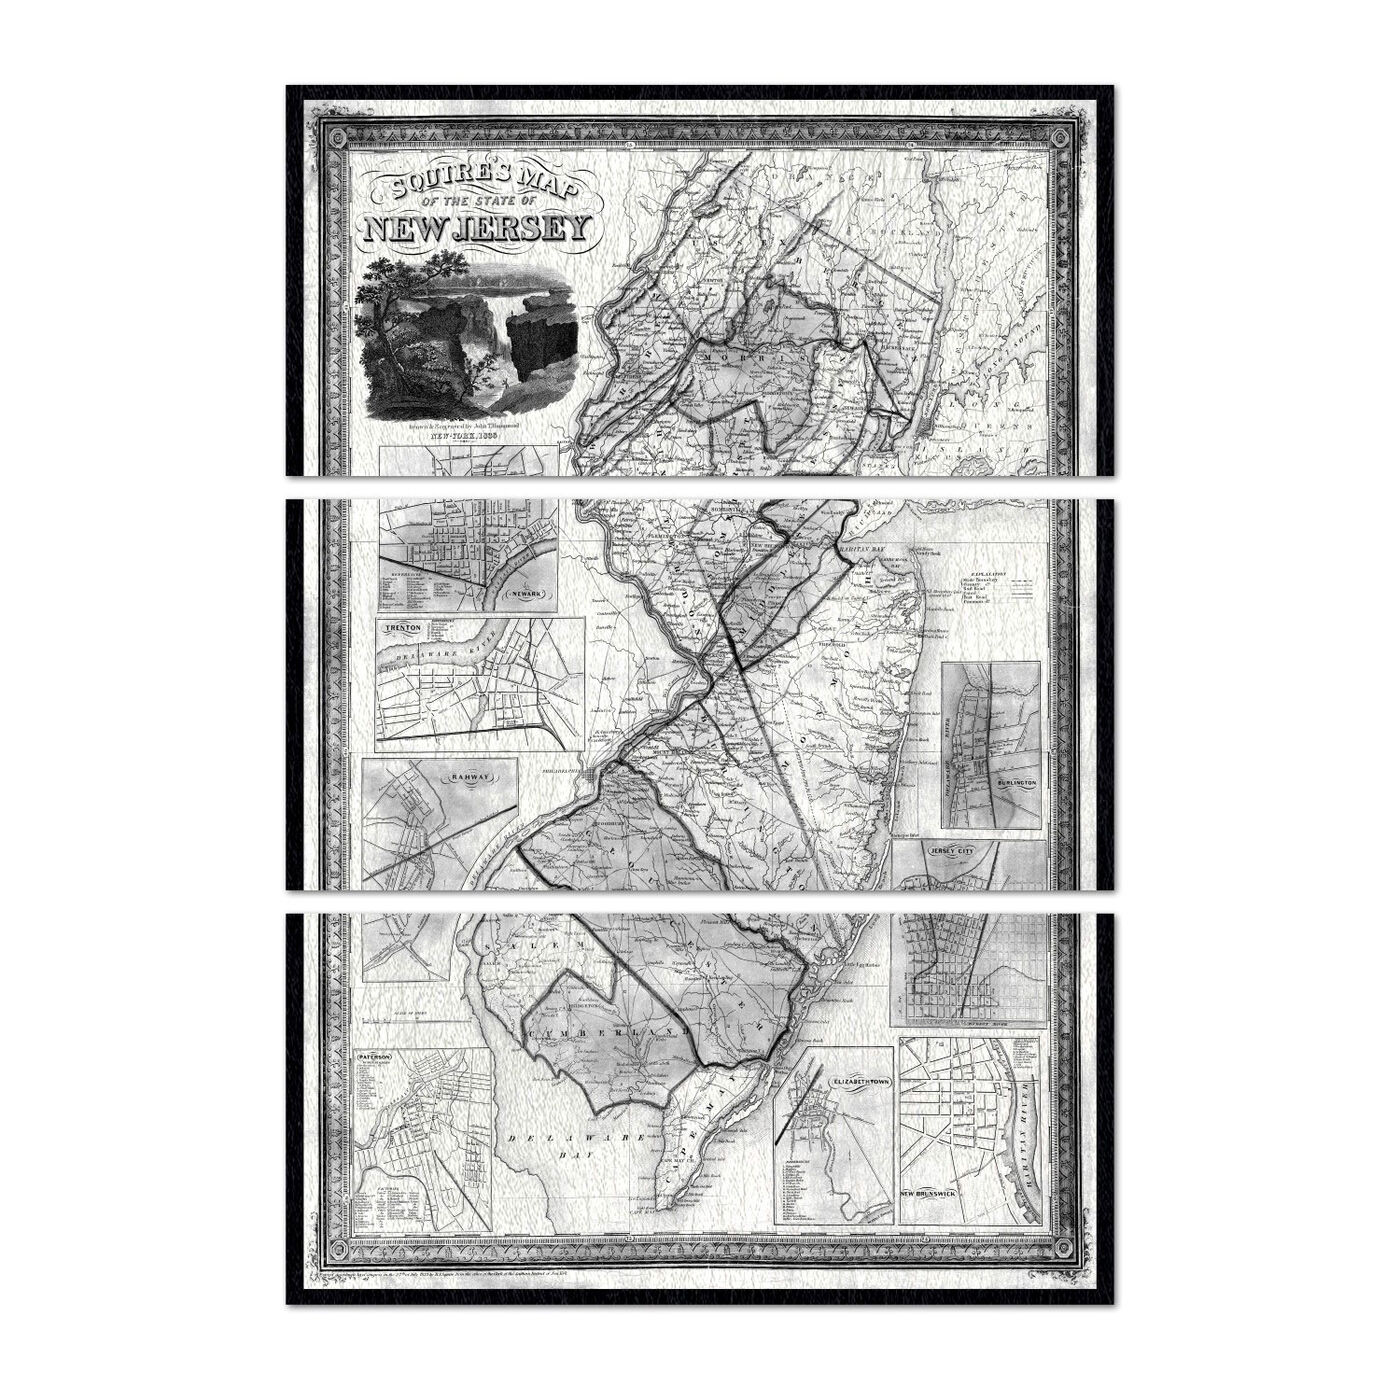 Squire's Map of New Jersey 1836 Triptych